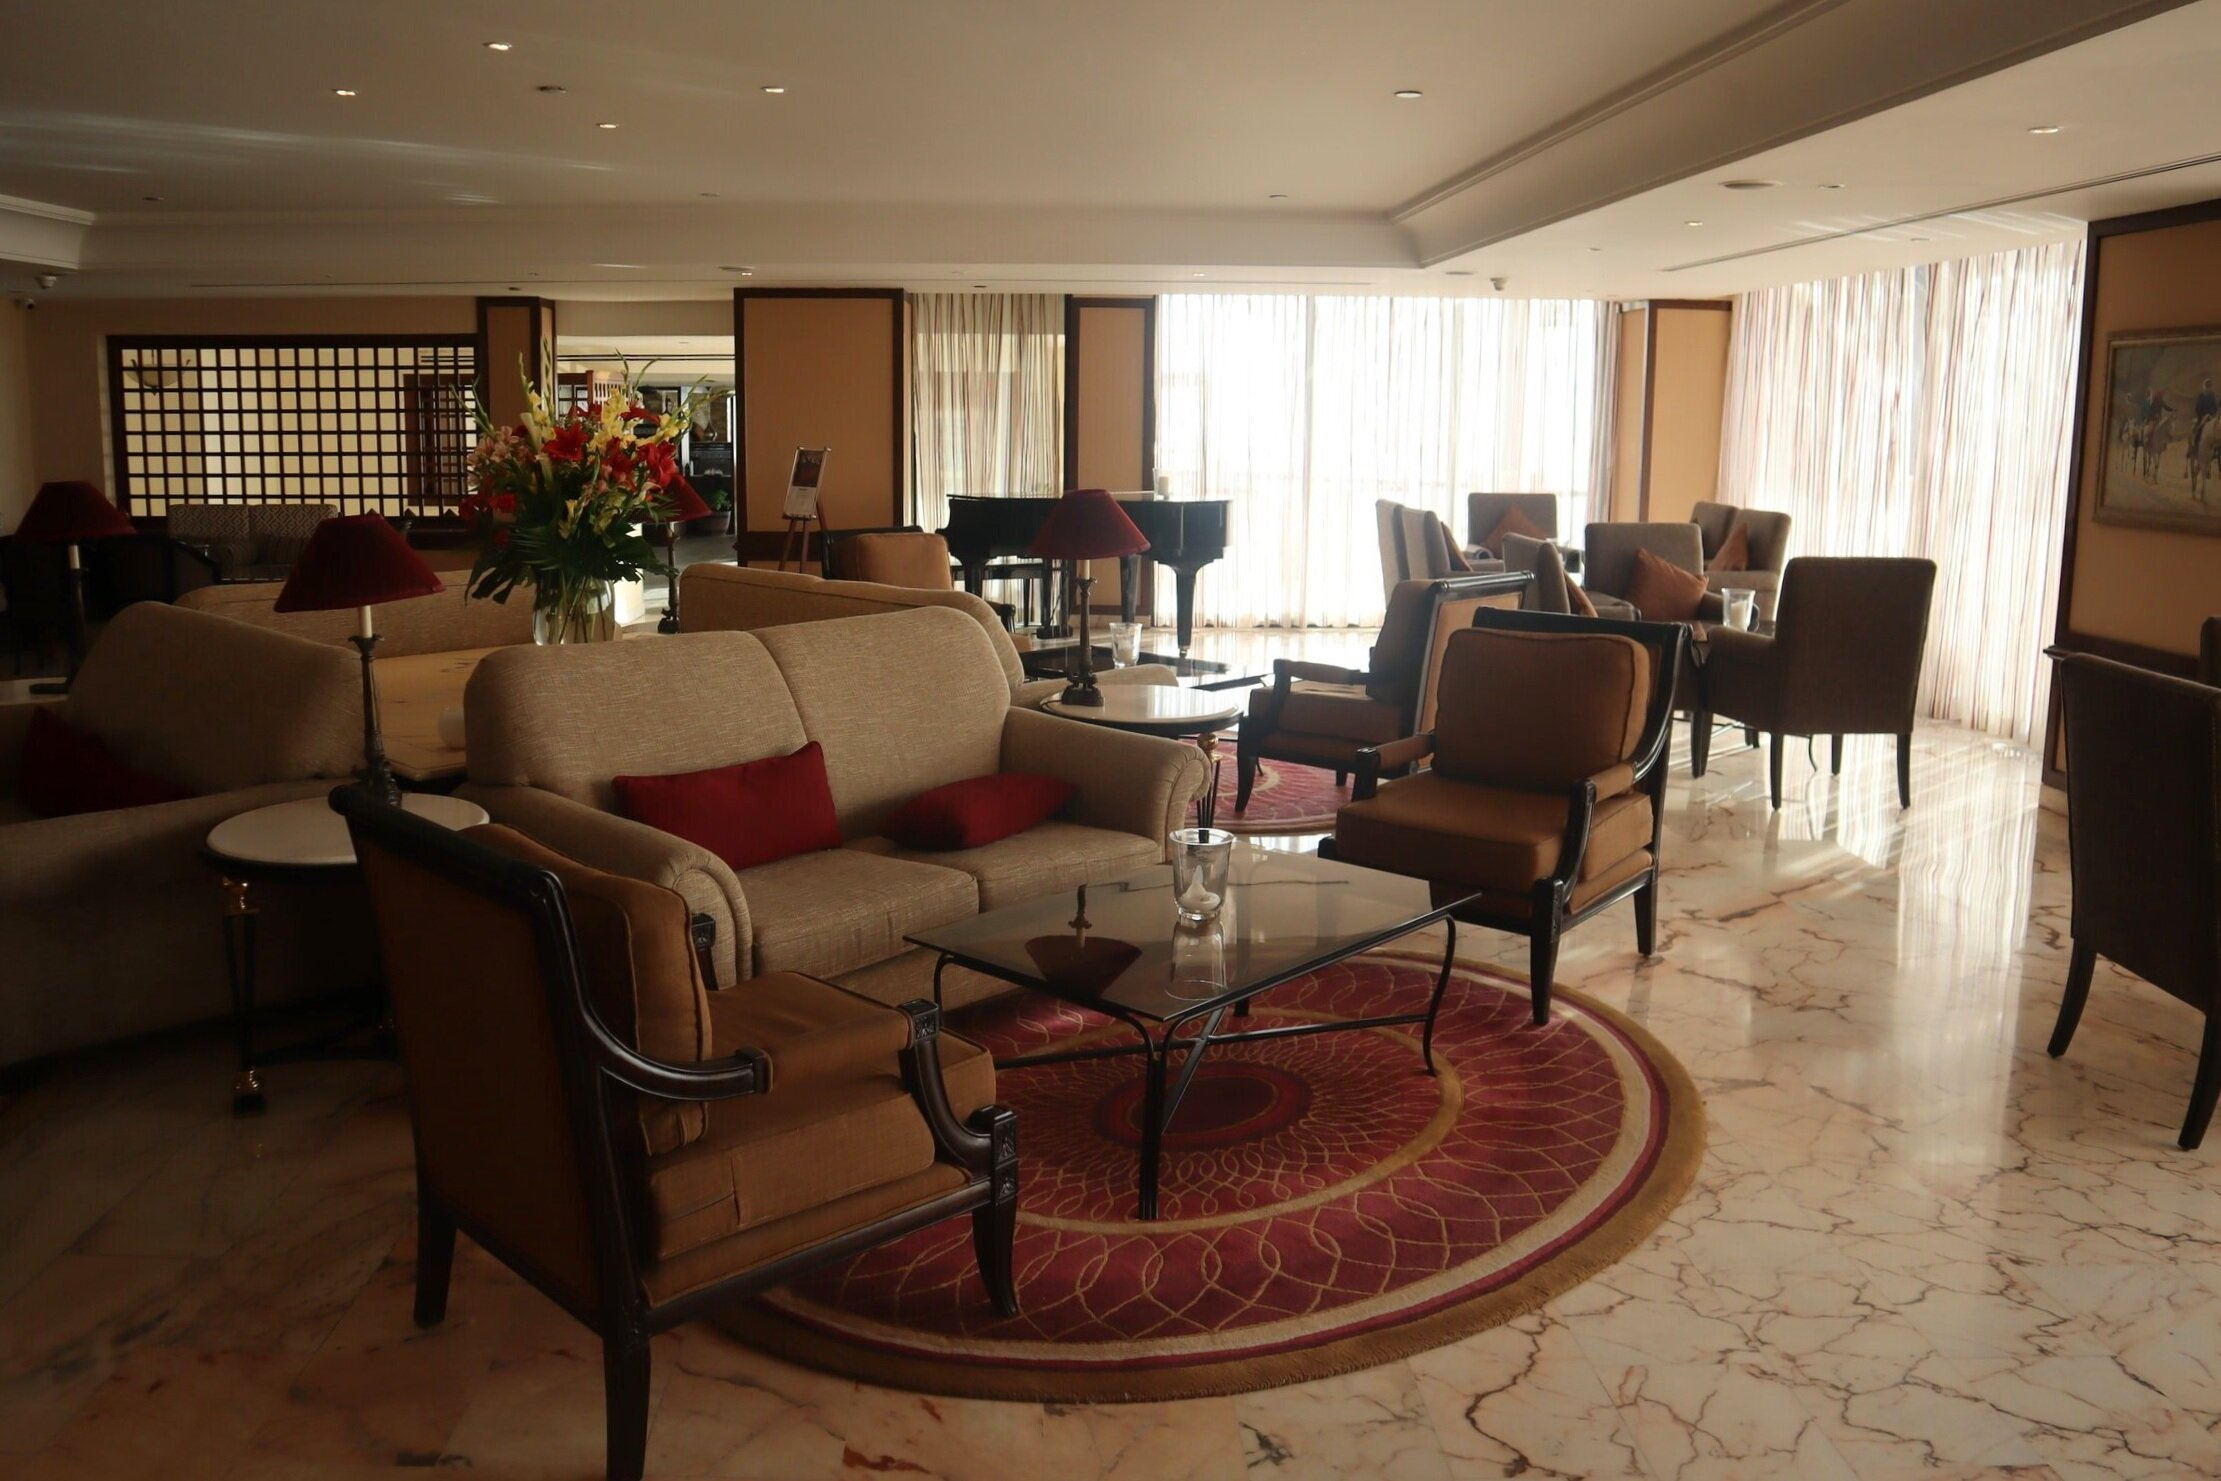 Marriott Petra – Communal seating area